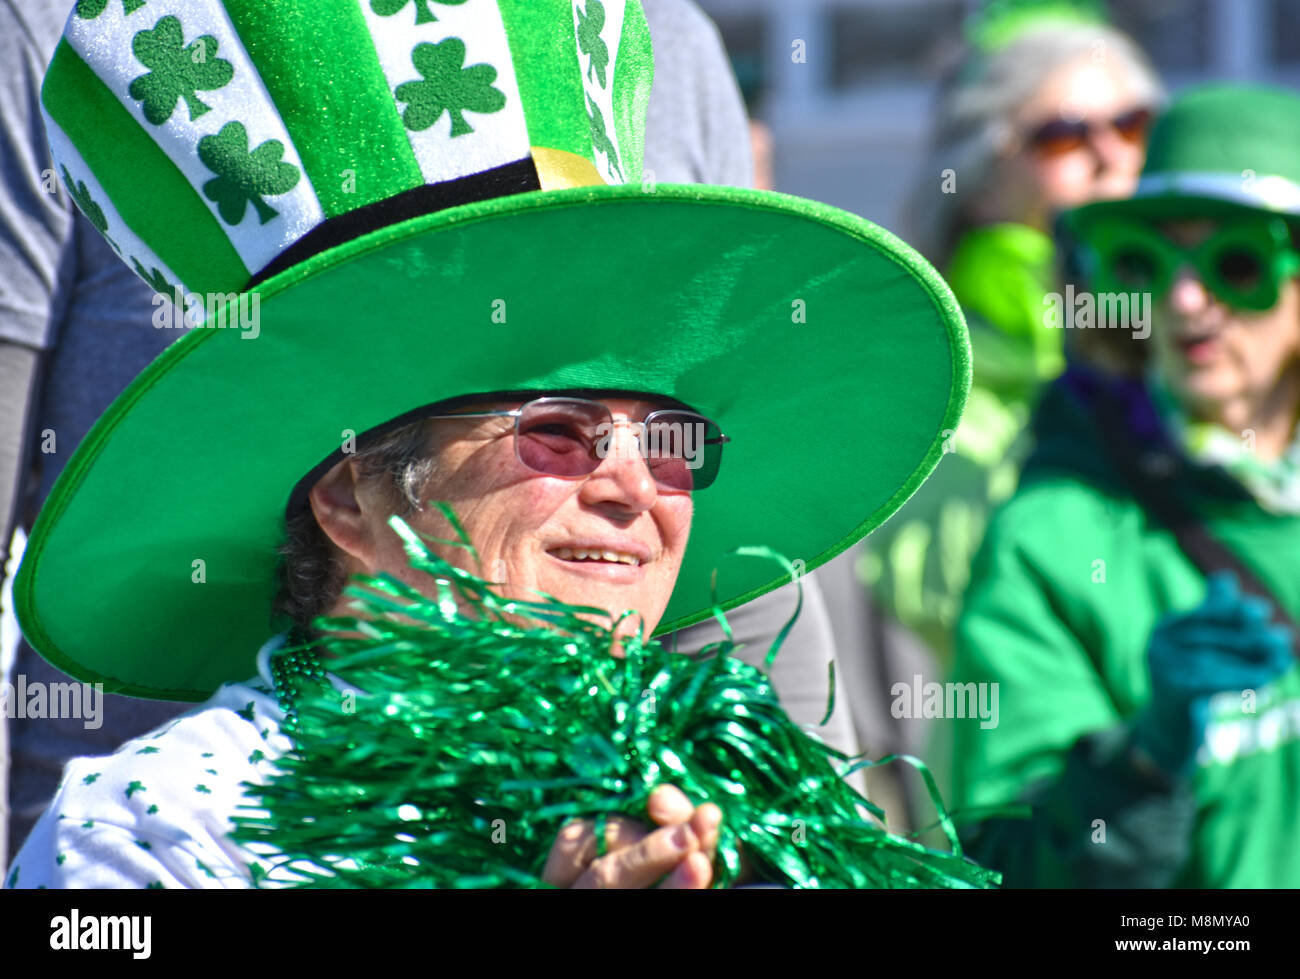 An older woman wearing a large green hat with shamrocks on it at the Bellingham, Washington St. Patrick's Day - Stock Image